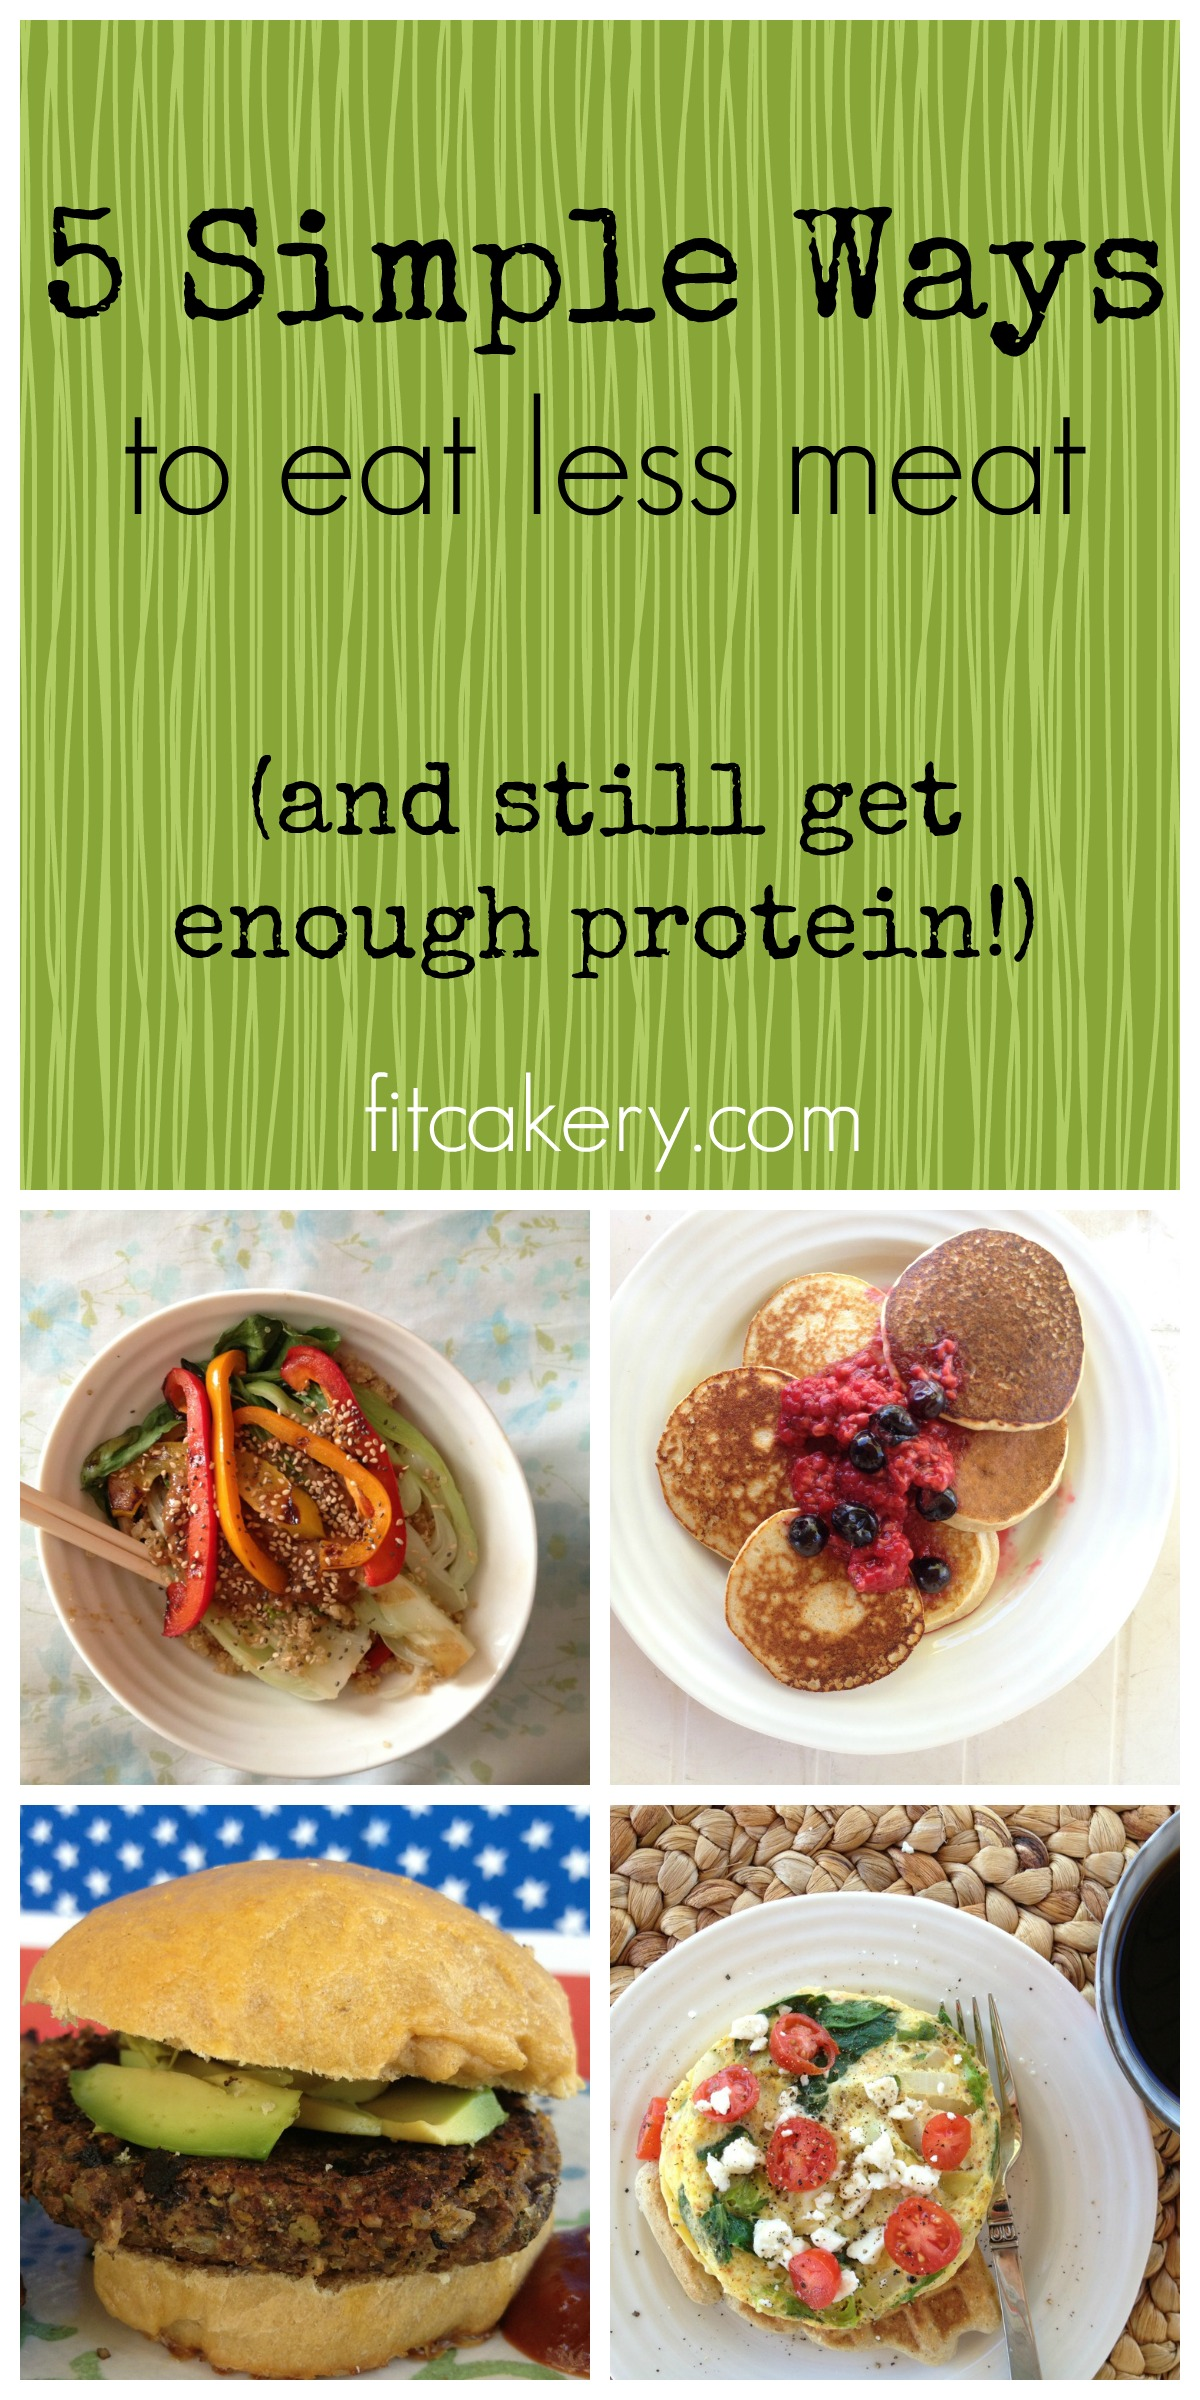 5 simple tips to eat less meat and still get enough protein! - fitcakery.com